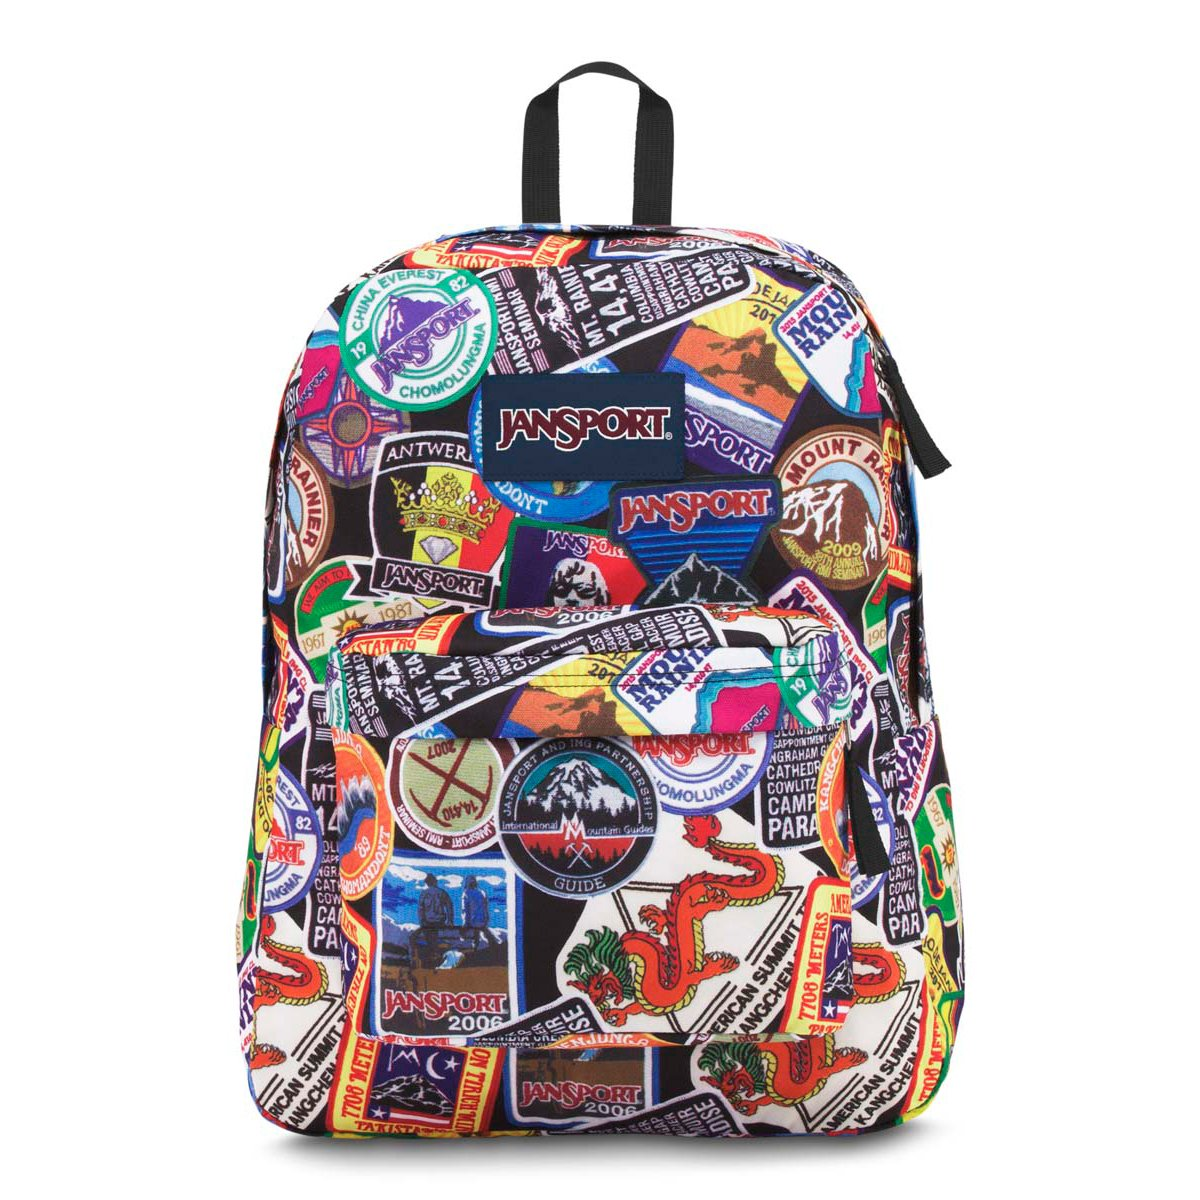 5f2624e5cc PATCHES HERITAGE PATCHES HERITAGE B071711ZZK JS00T501-P スーパー ...